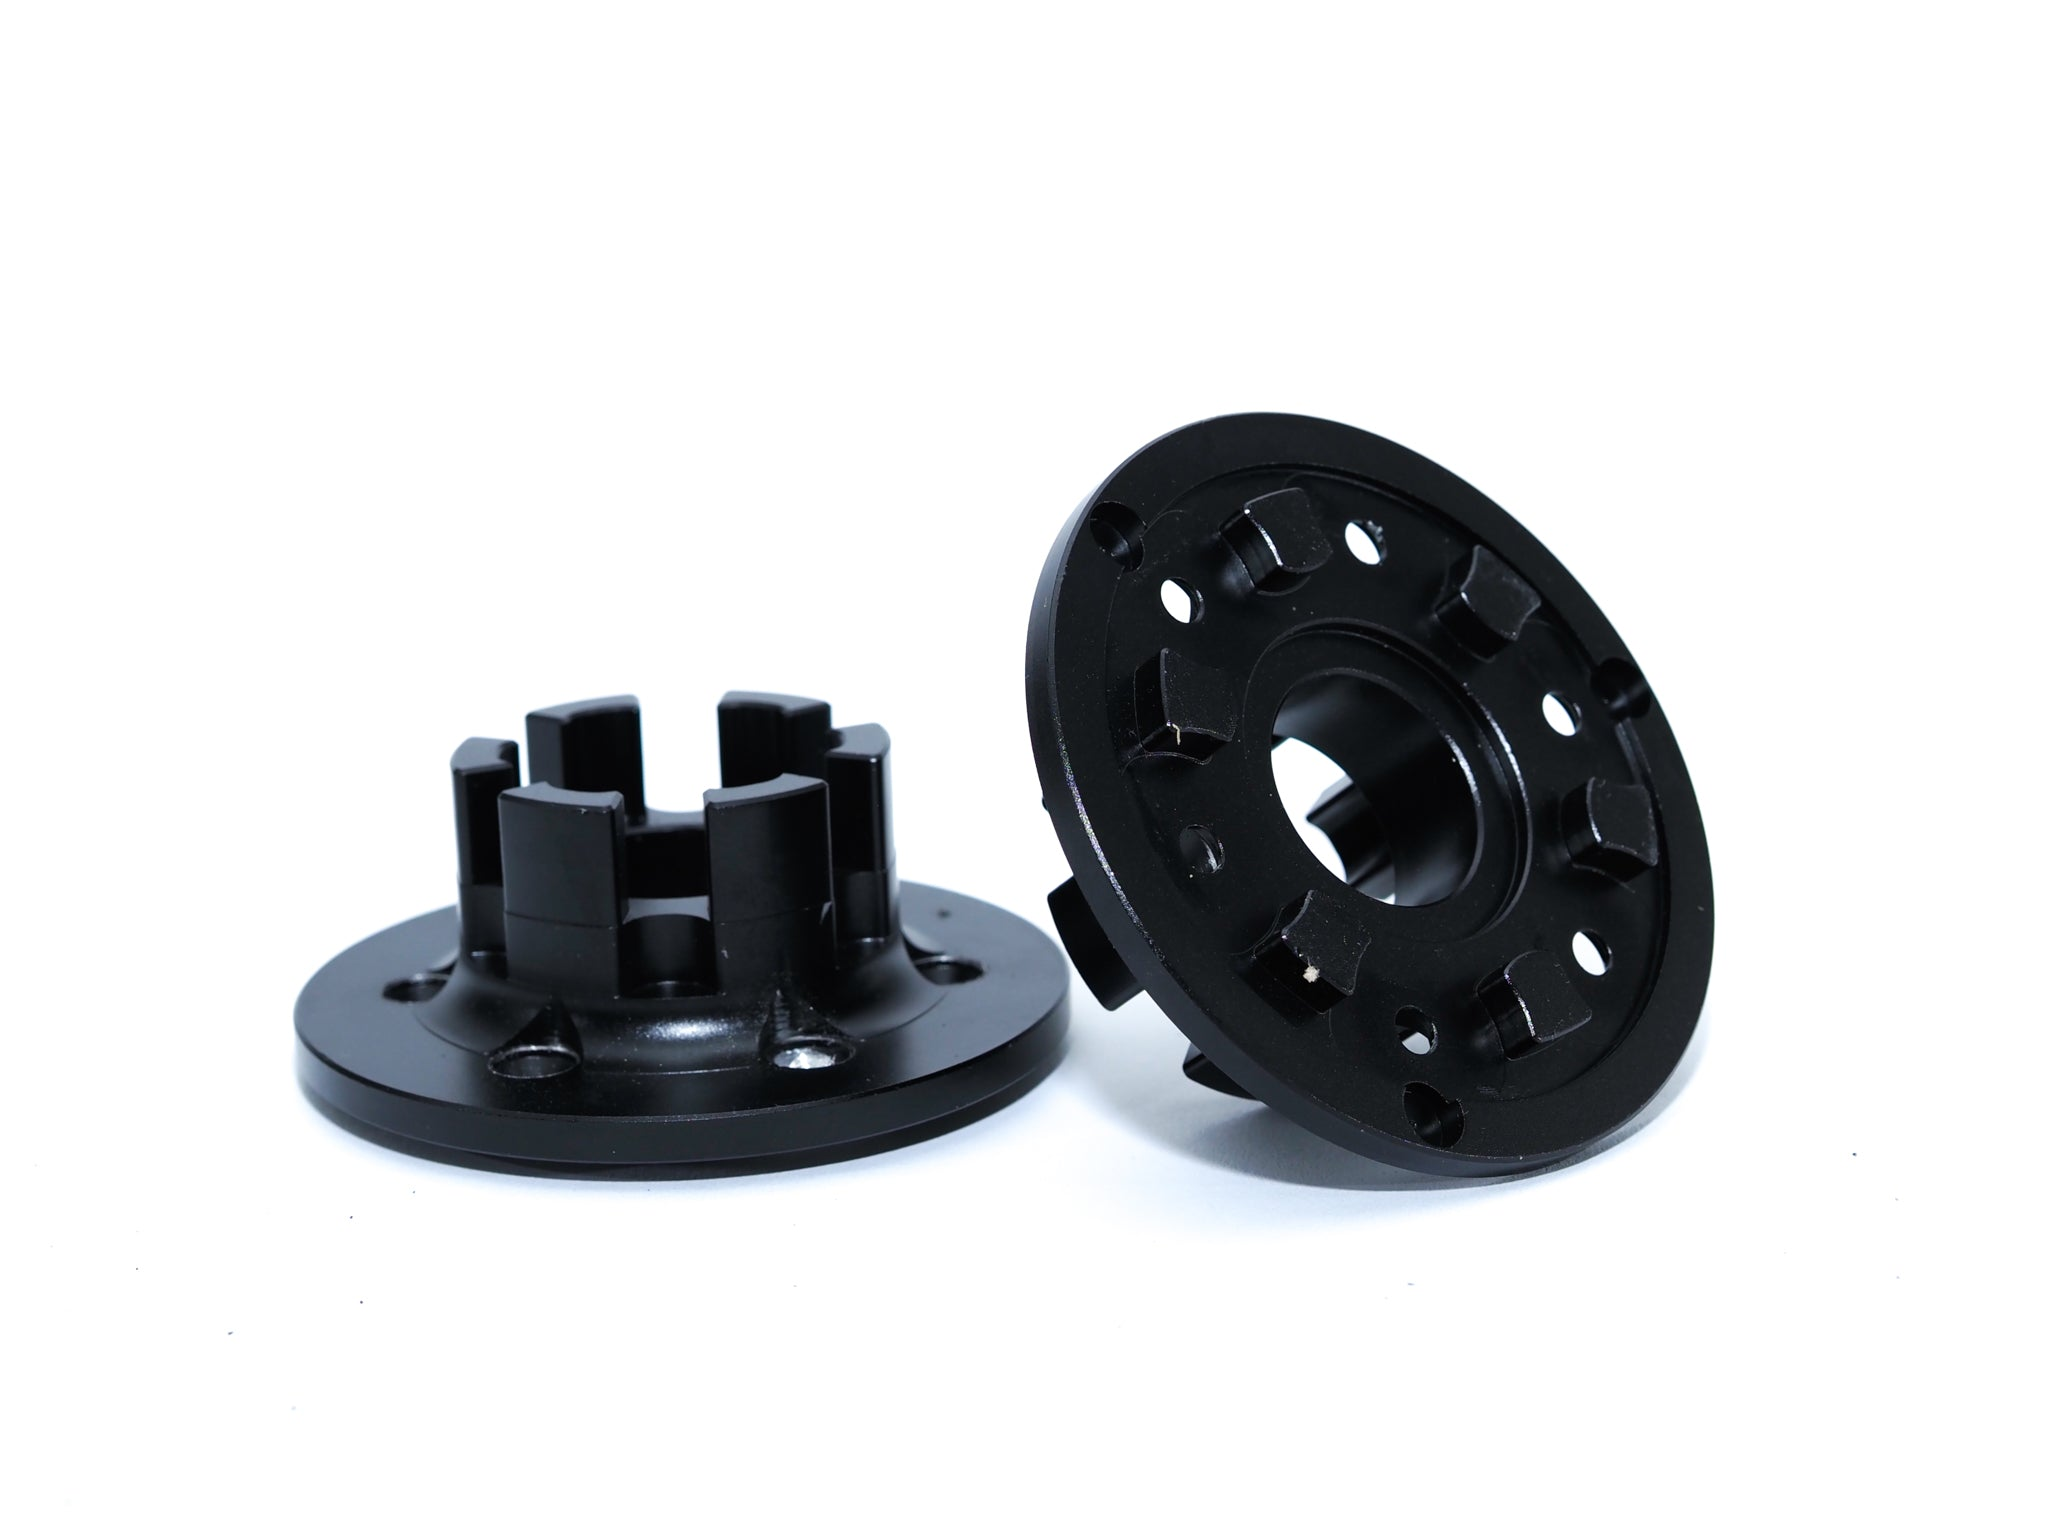 KEGEL or ABEC Adaptor for Direct Drive Motor - ONSRA Europe